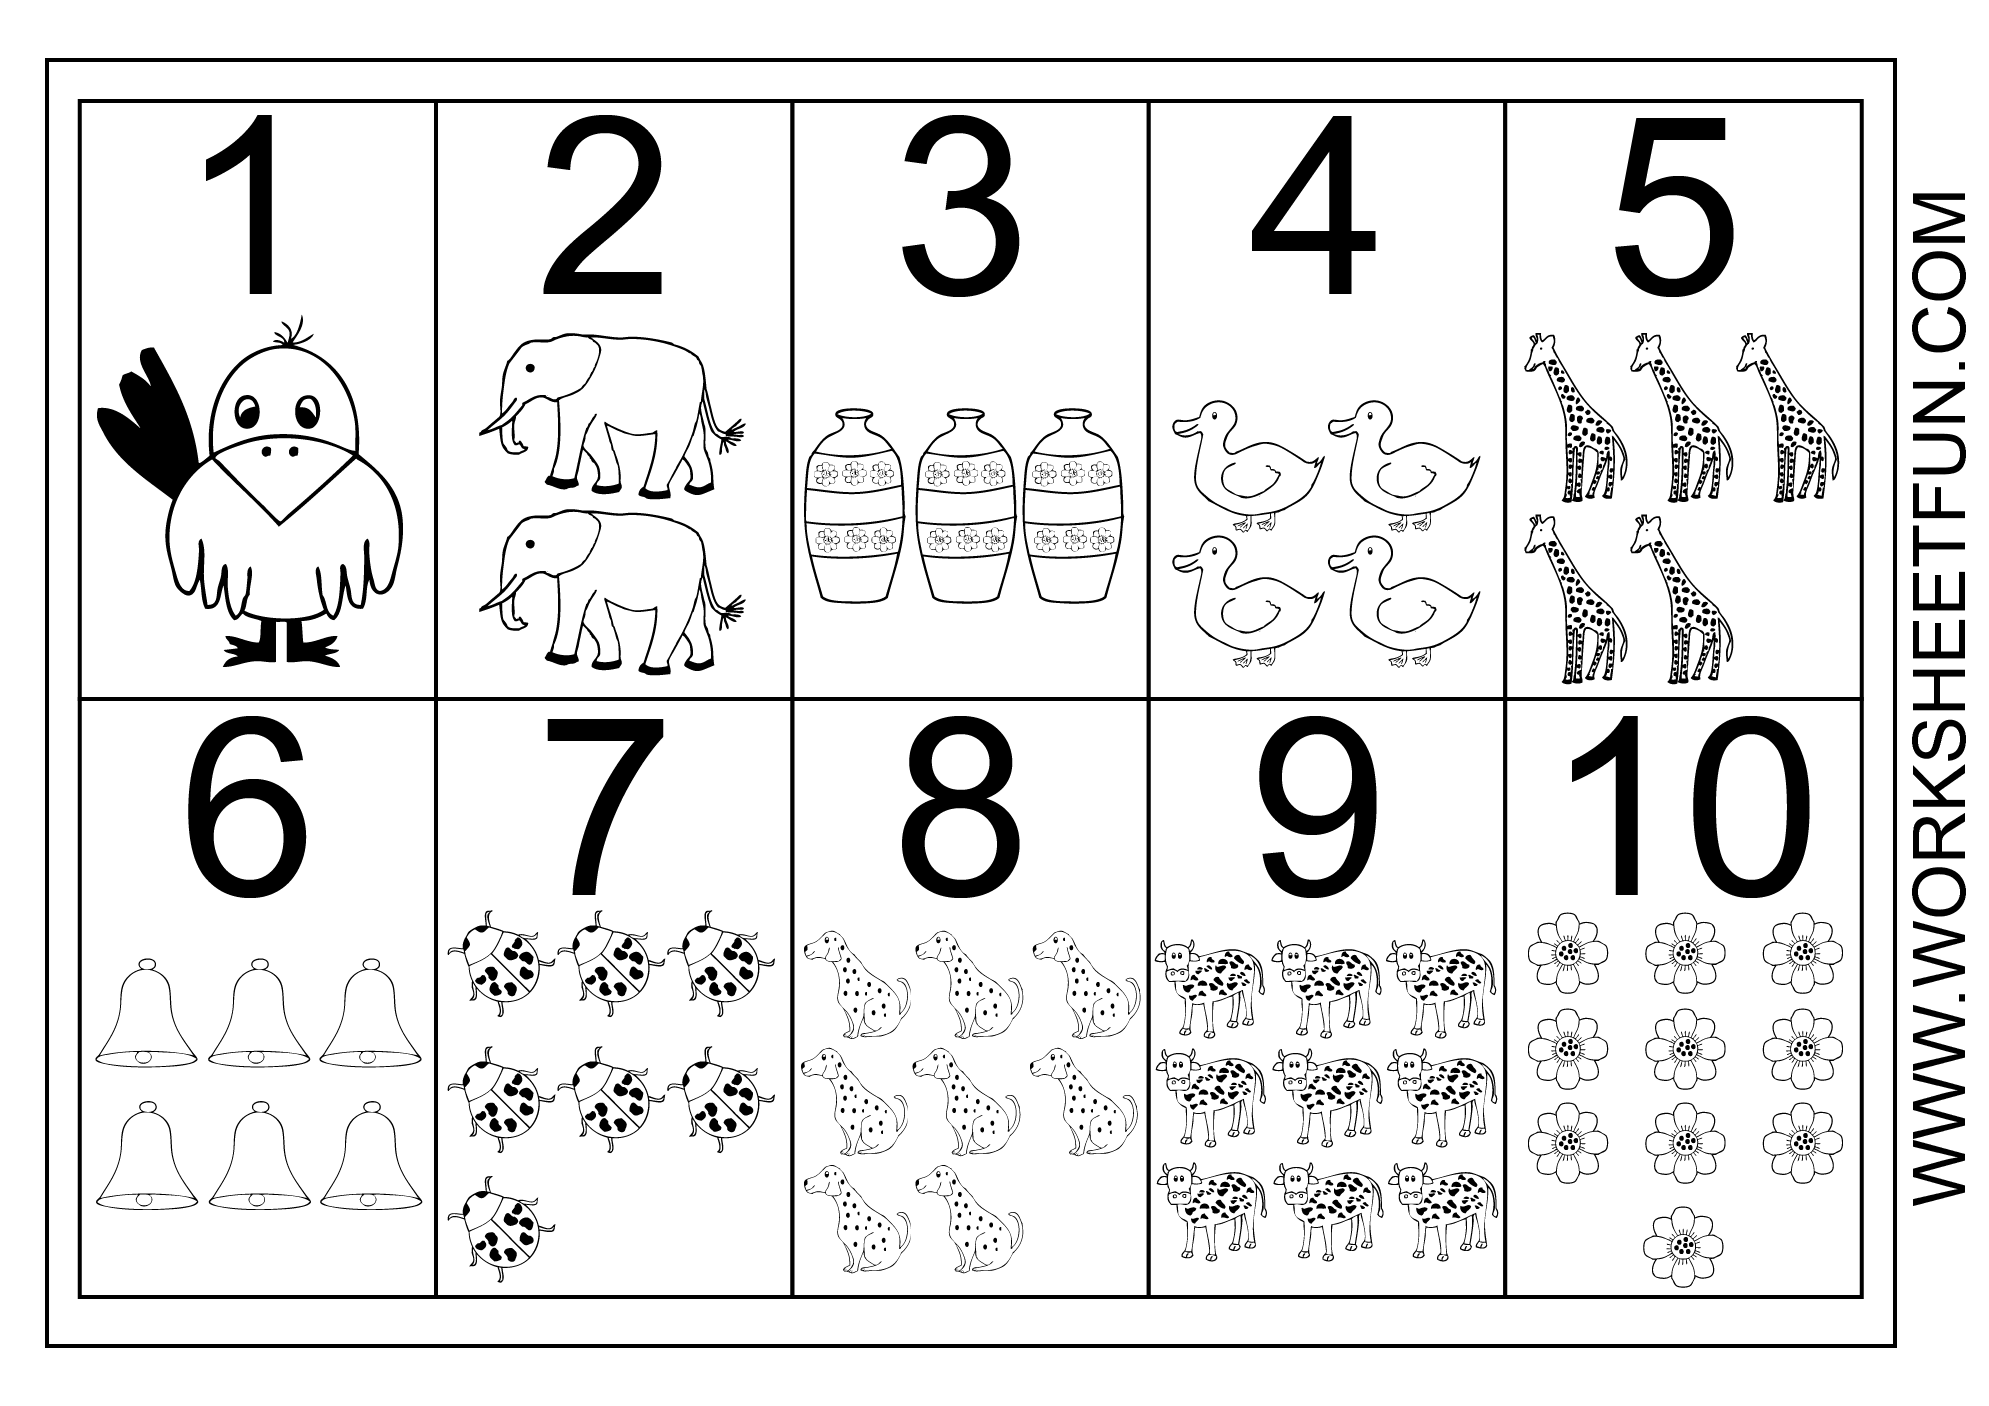 Worksheet Printable Numbers 1-20 tracing numbers 1 20 worksheets kindergarten worksheet free preschool math on from to 5 for